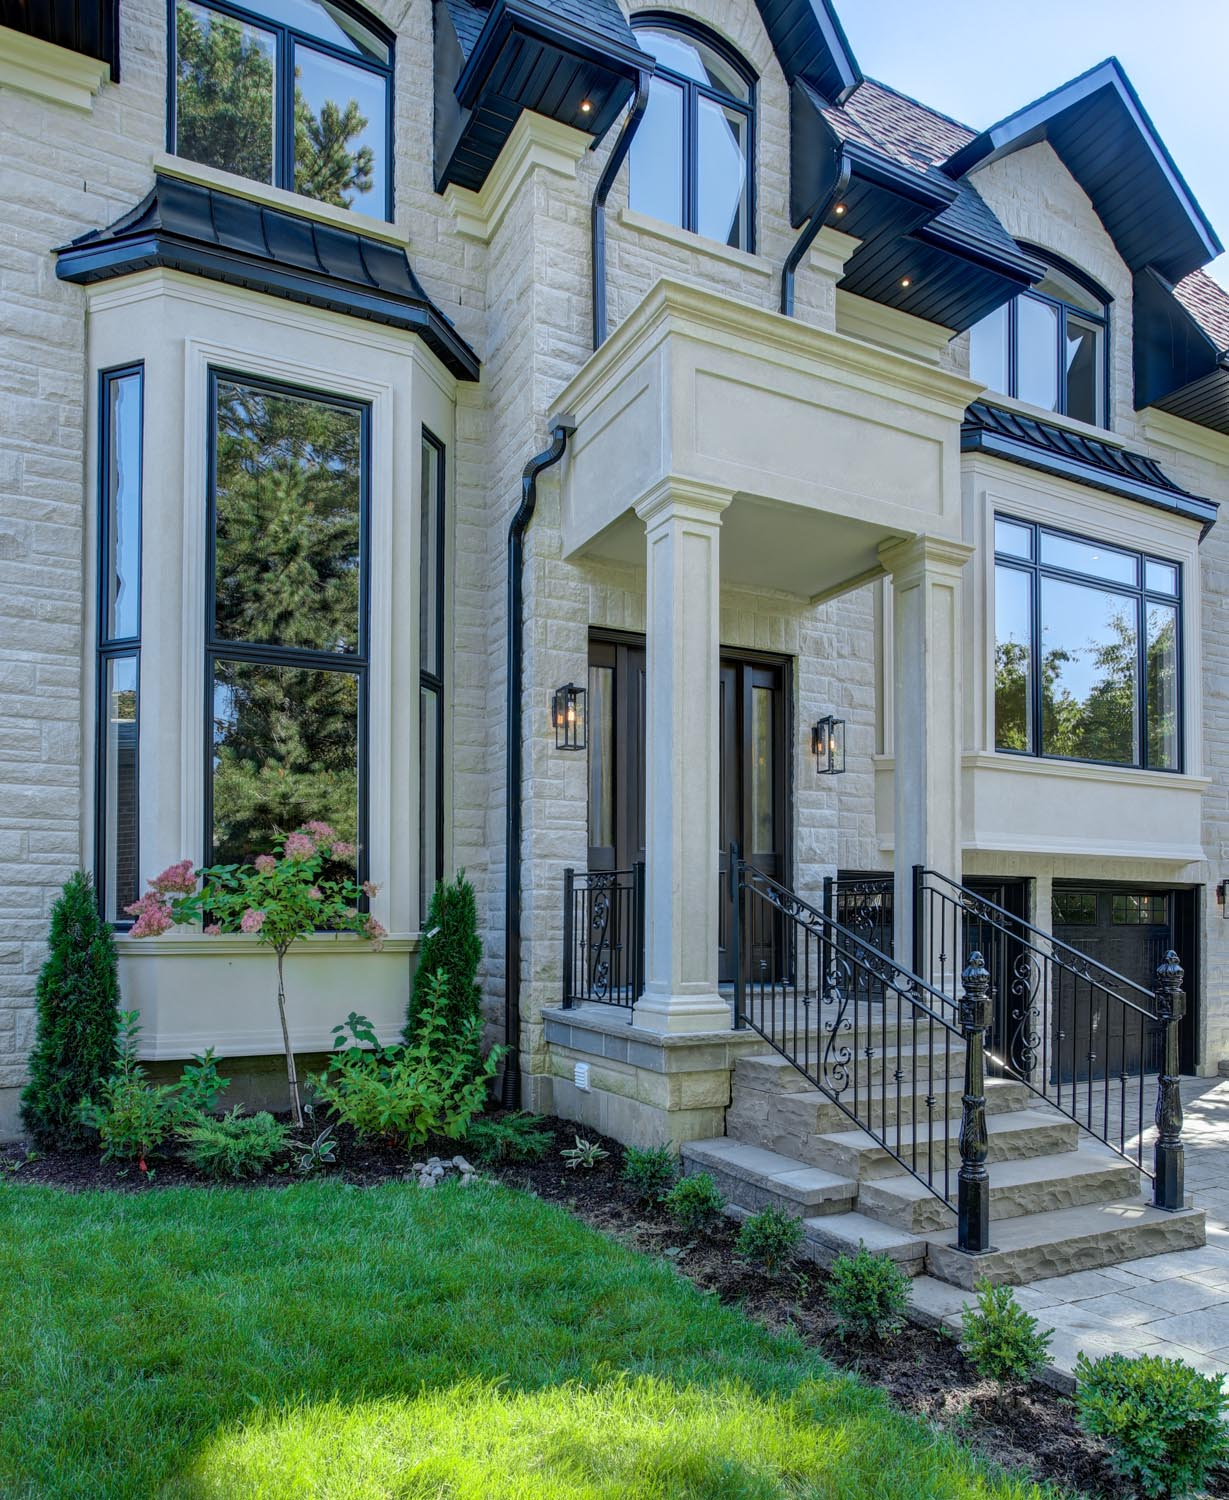 Toronto transitional custom home – front exterior